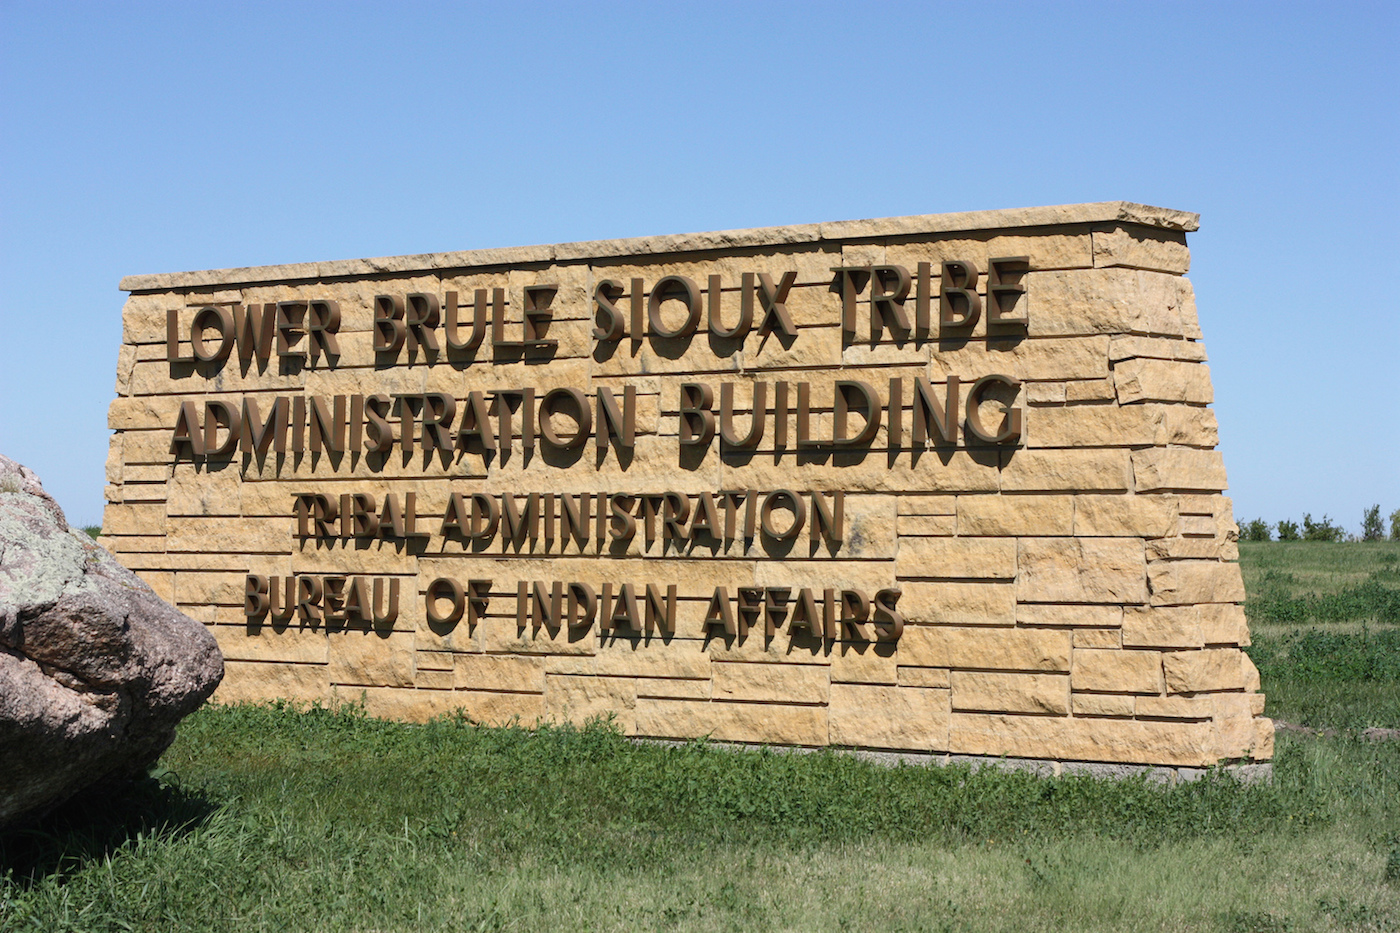 Acting chairman of Lower Brule Sioux Tribe defends leadership